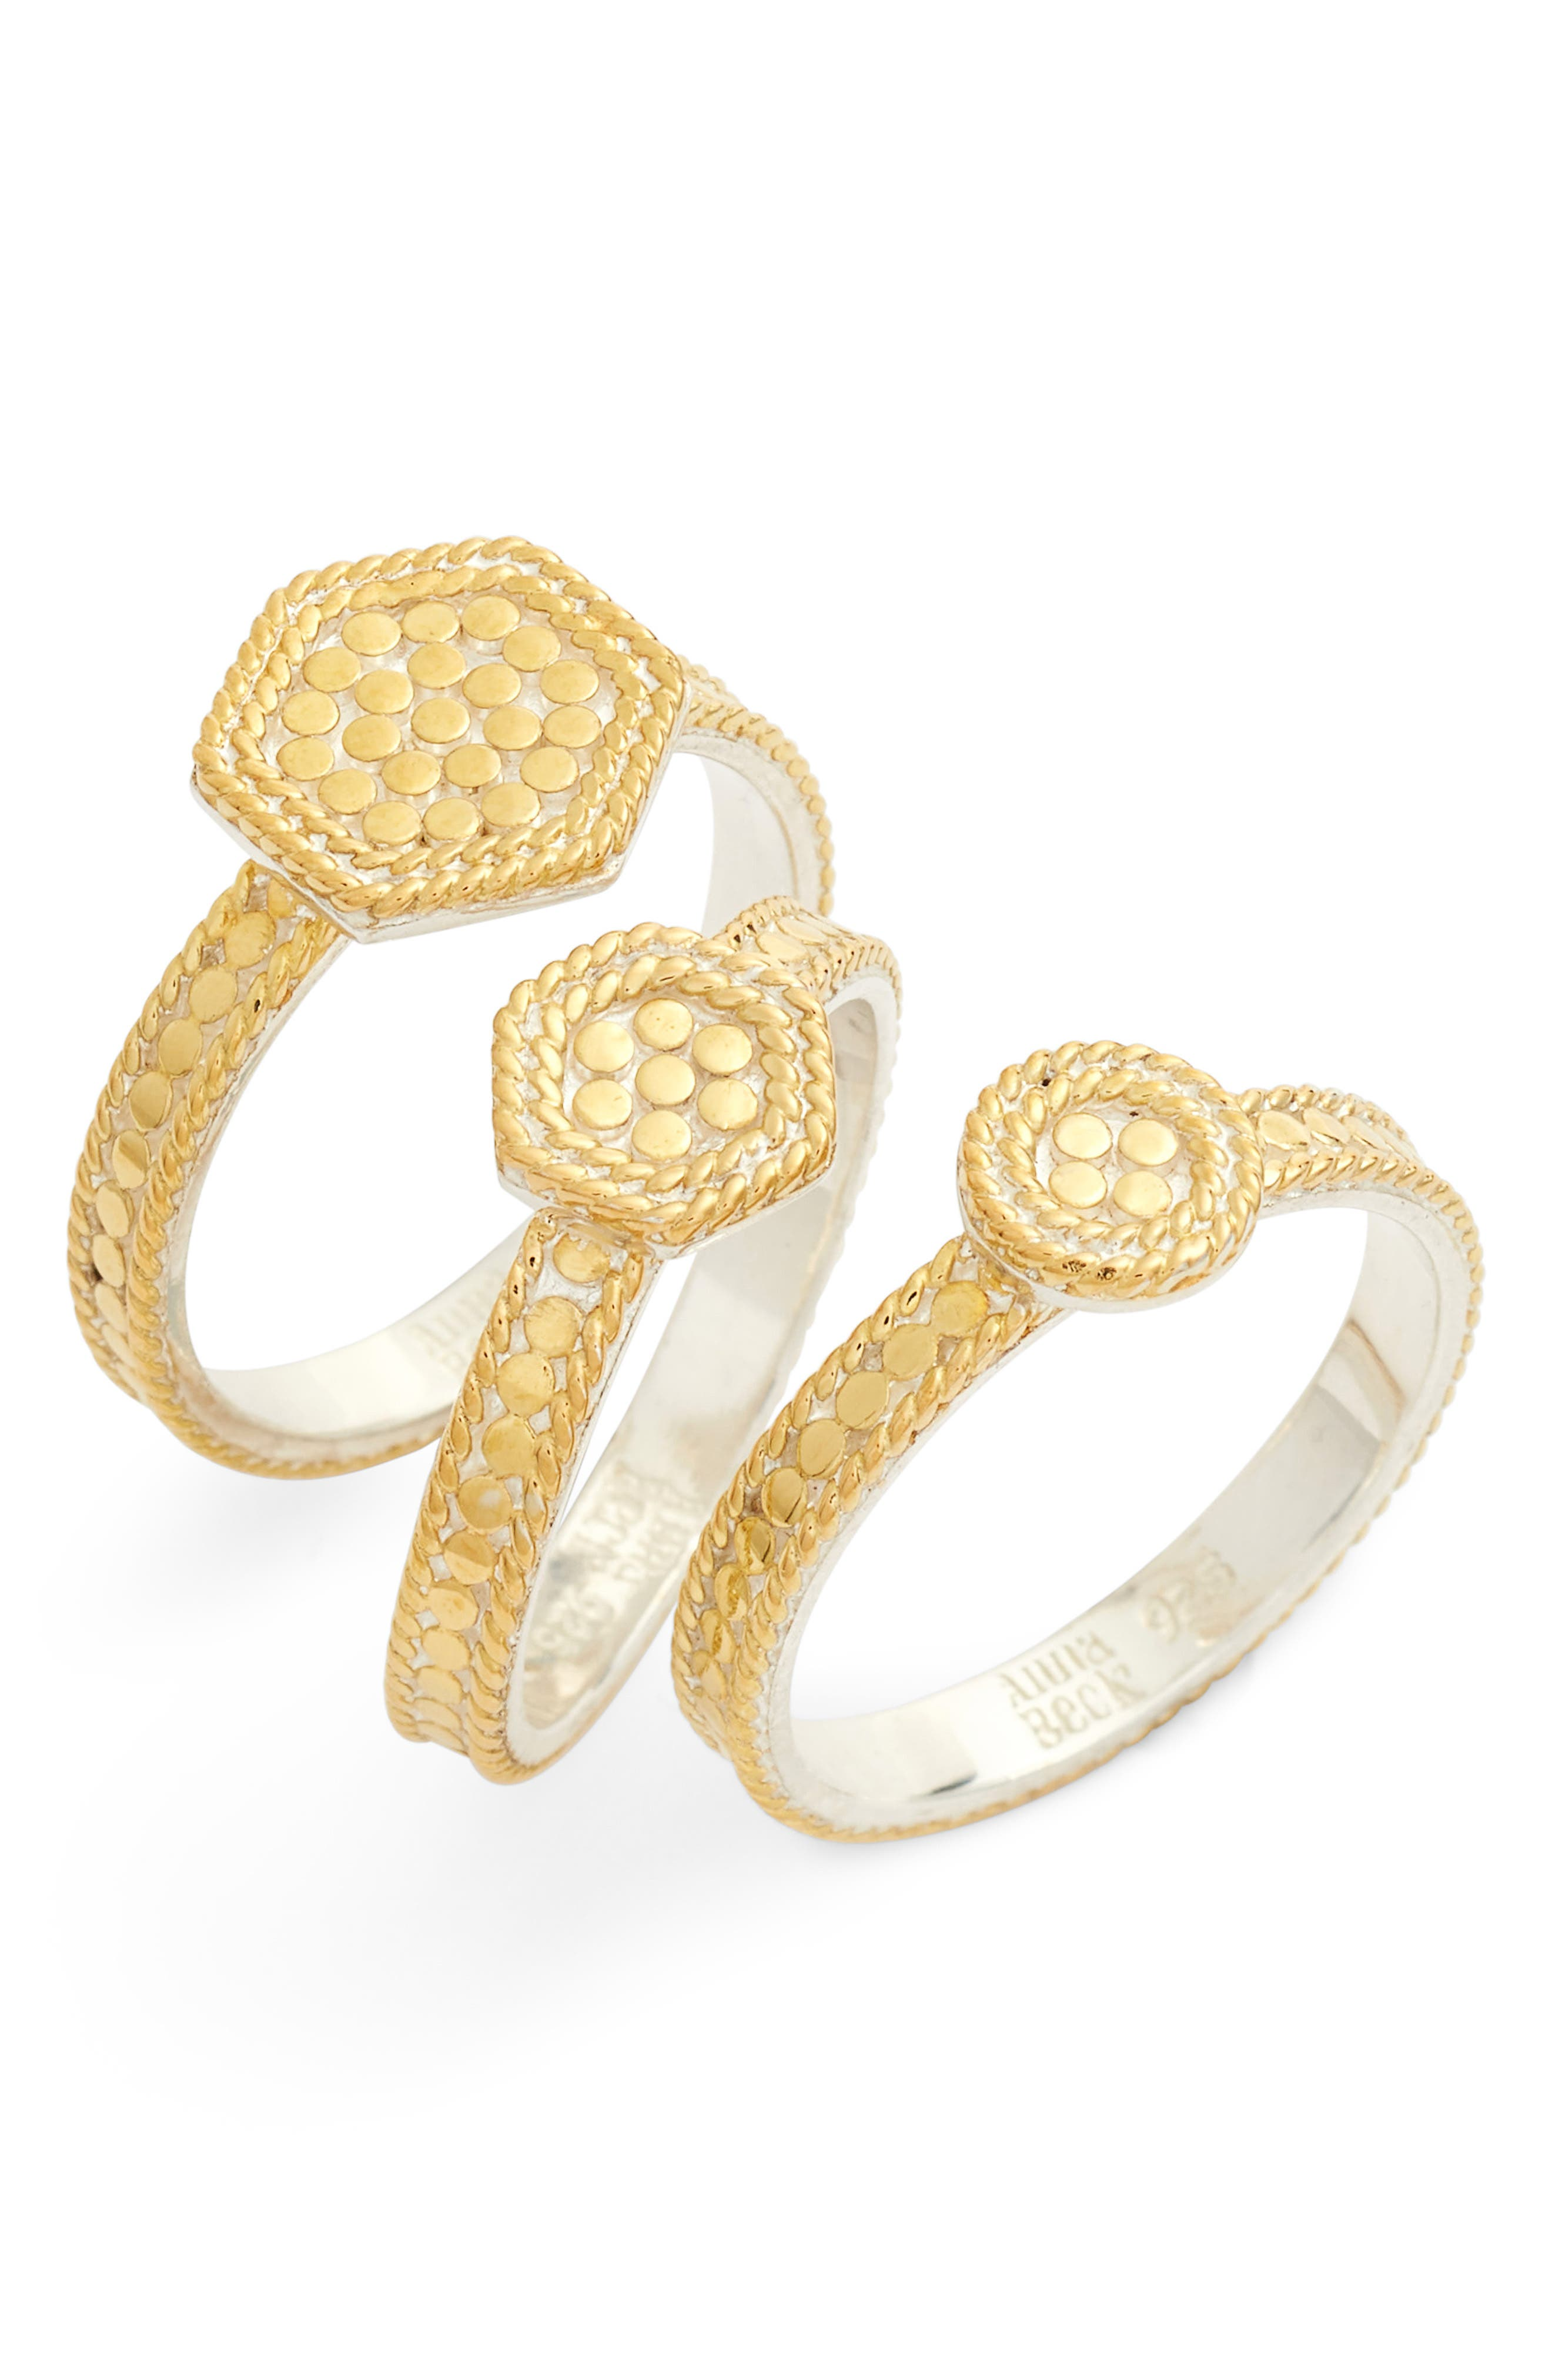 Gold Plate Geometric Set of 3 Stacking Rings,                         Main,                         color, Gold